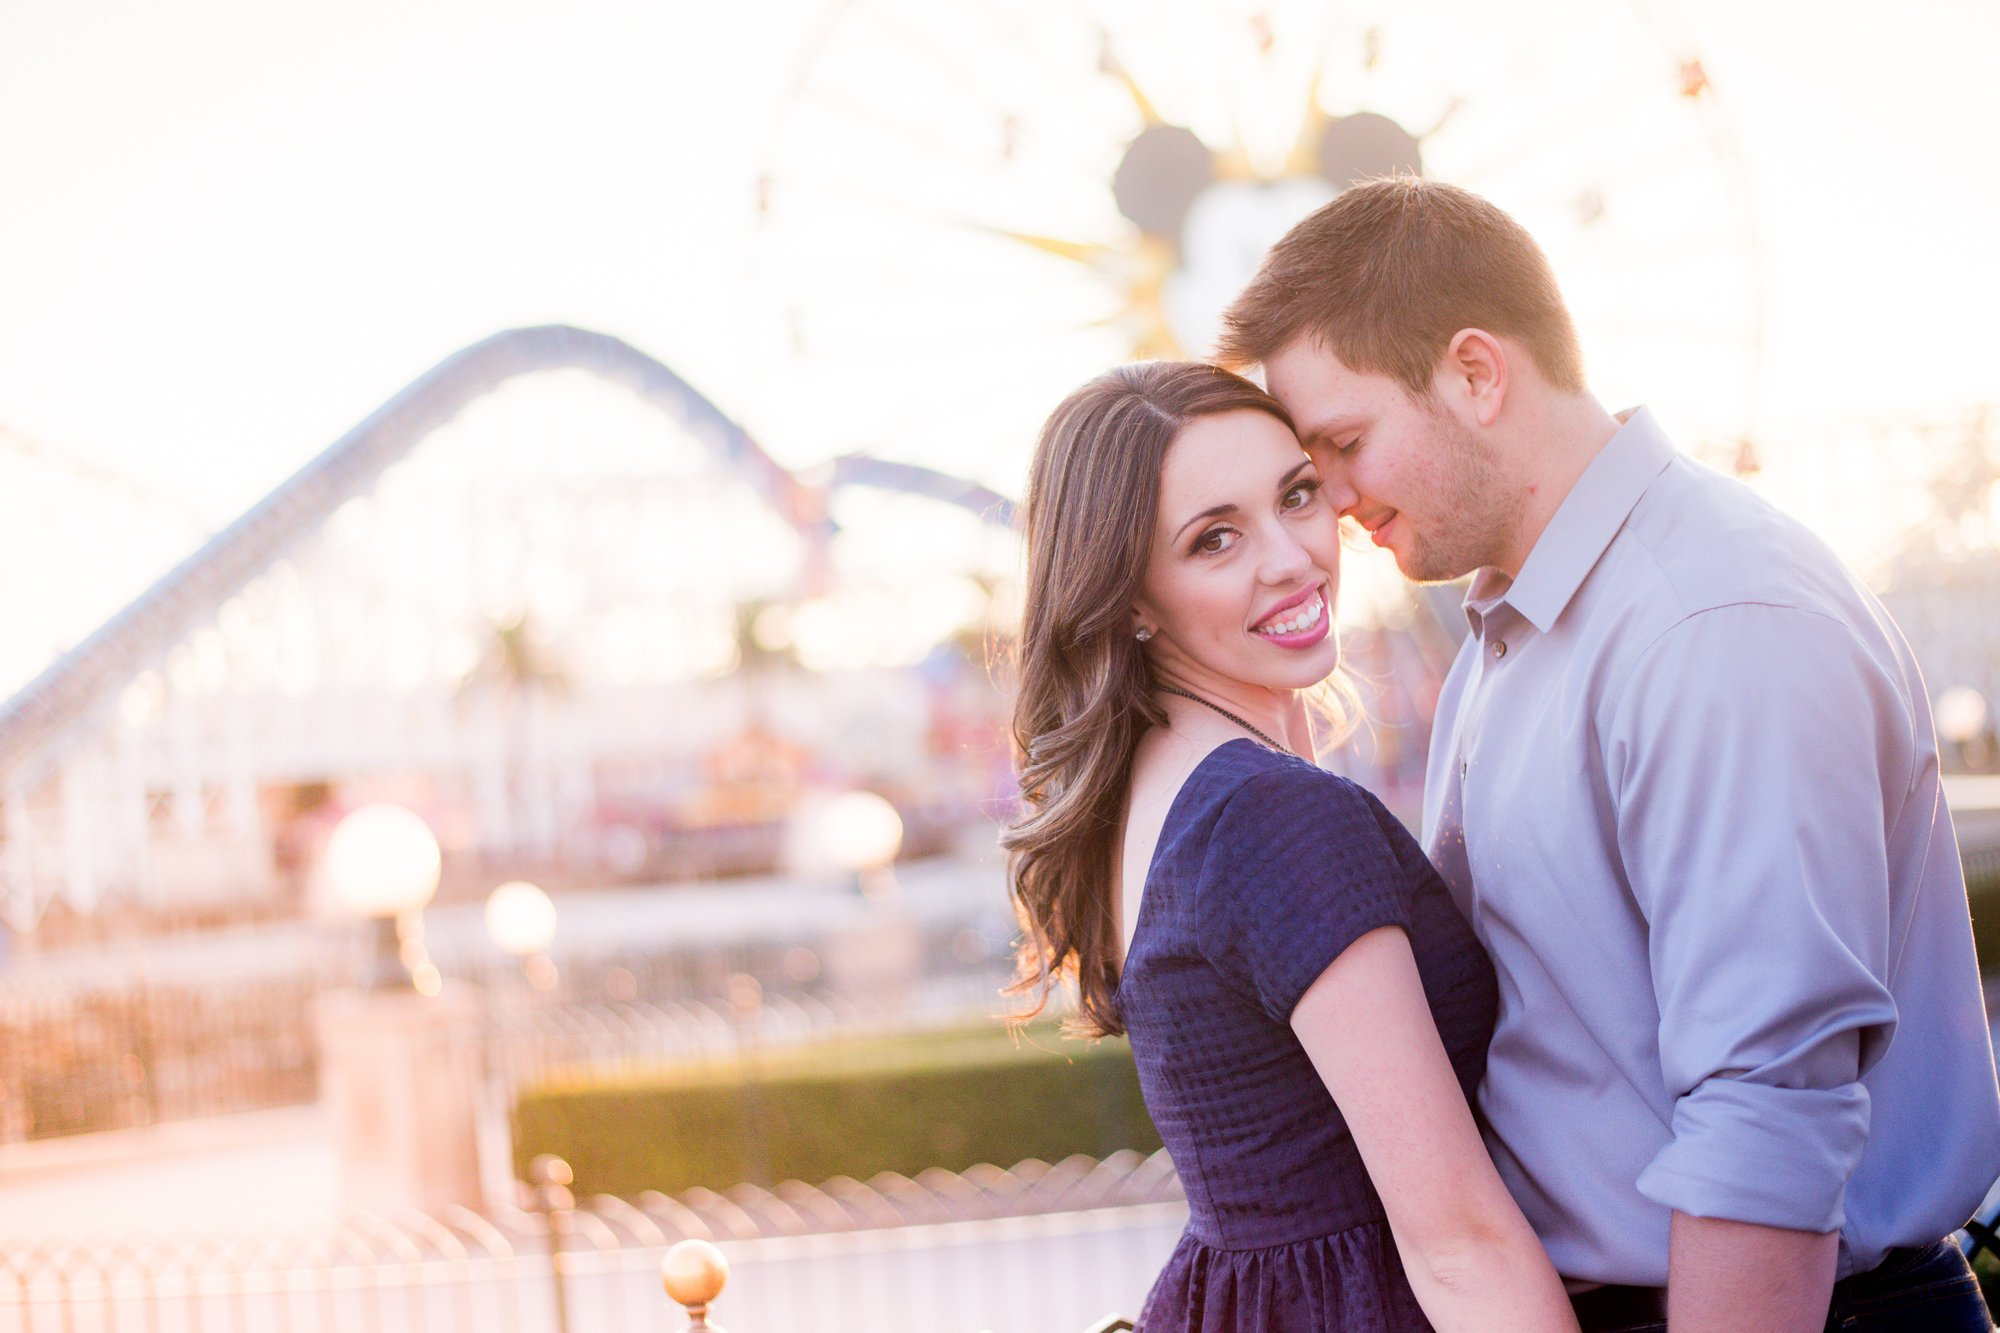 Mehlberg couple in California Adventure